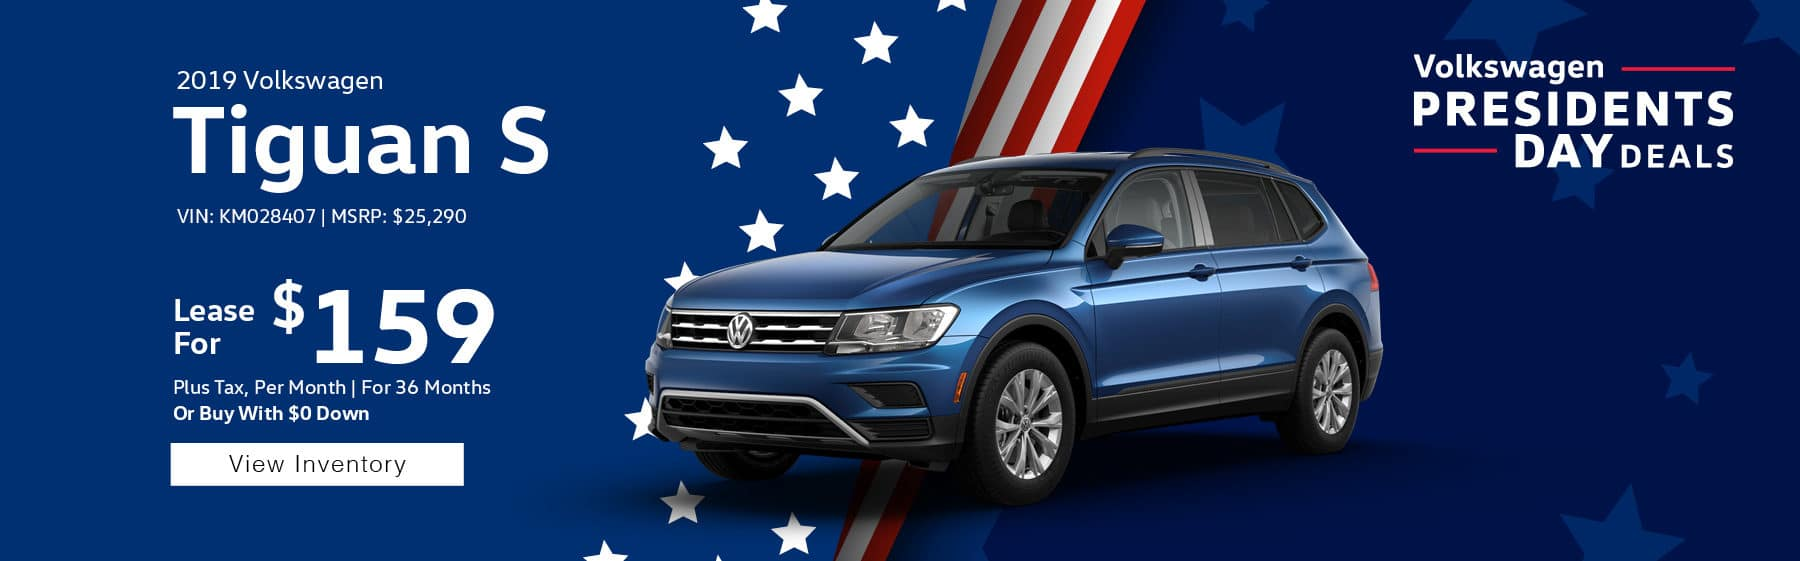 Lease the 2019 Volkswagen Tiguan S for $159 plus tax for 36 months. $1,895 Down payment required.